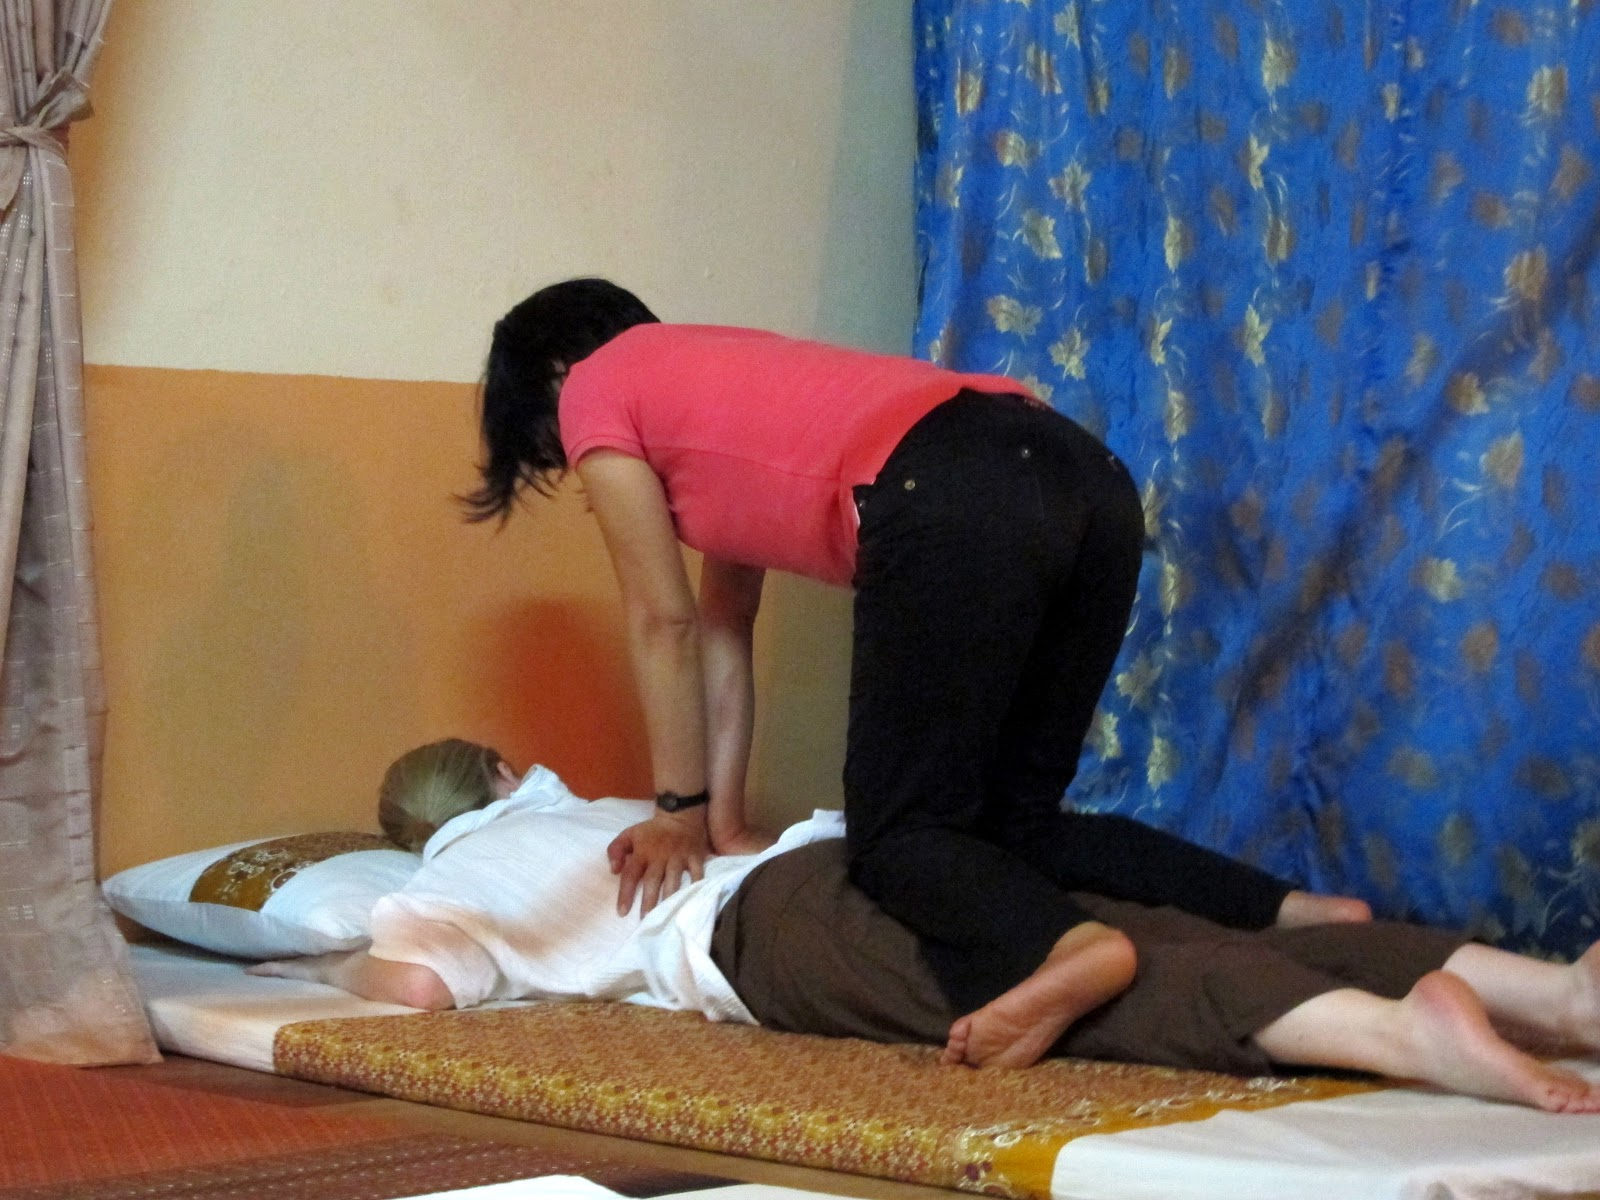 Thai Massage: It Hurts So Good! - Ferreting Out the Fun